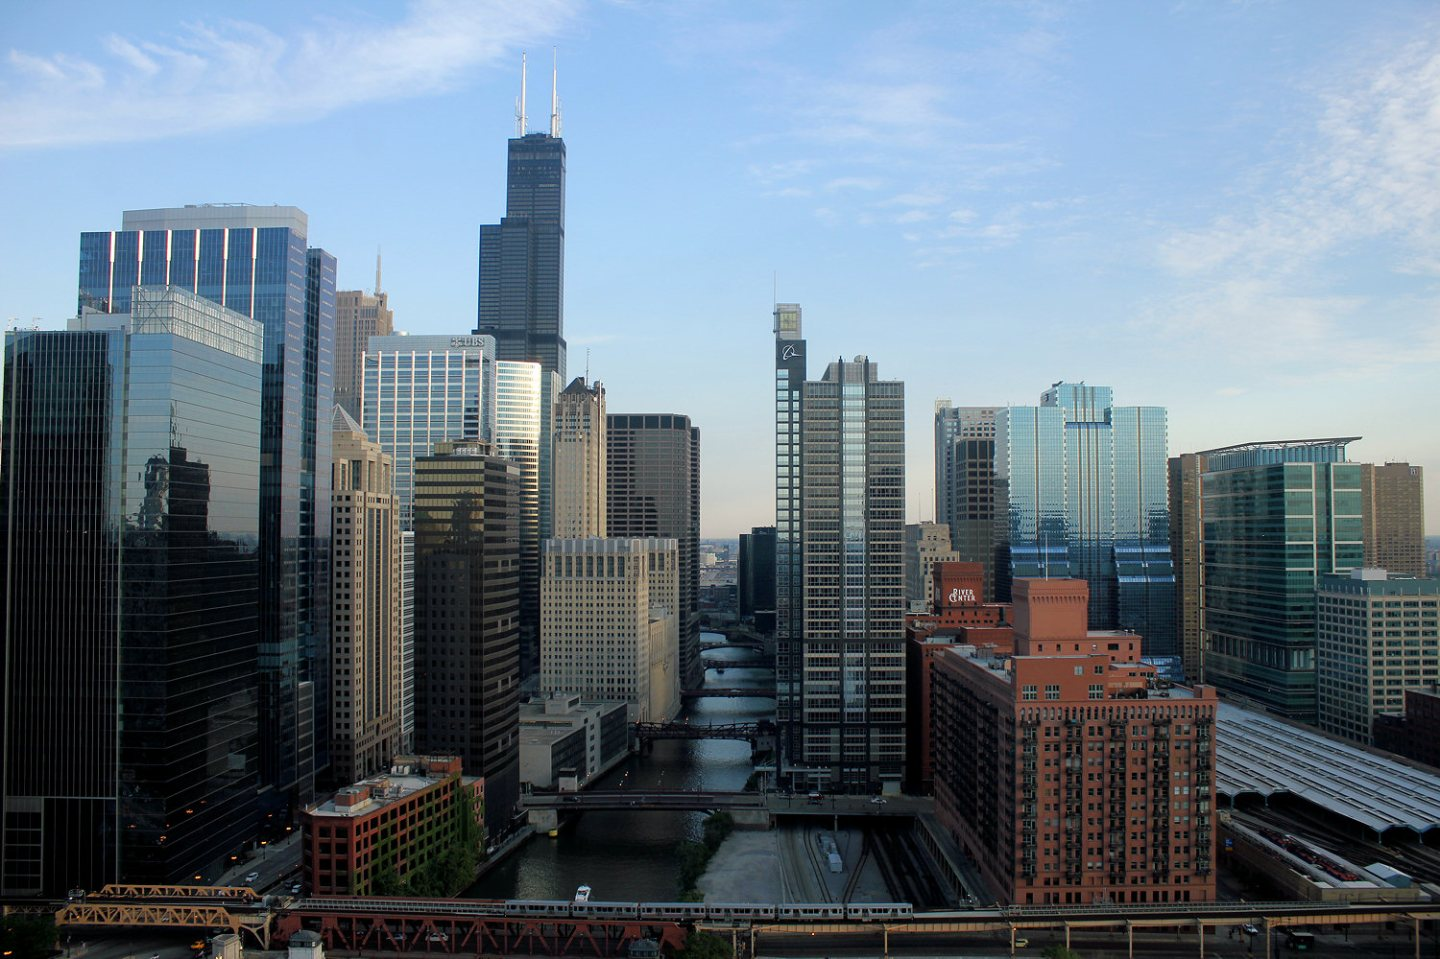 Chicago skyline including Willis Tower and the Boeing Building, Photo by SturmovikDragon